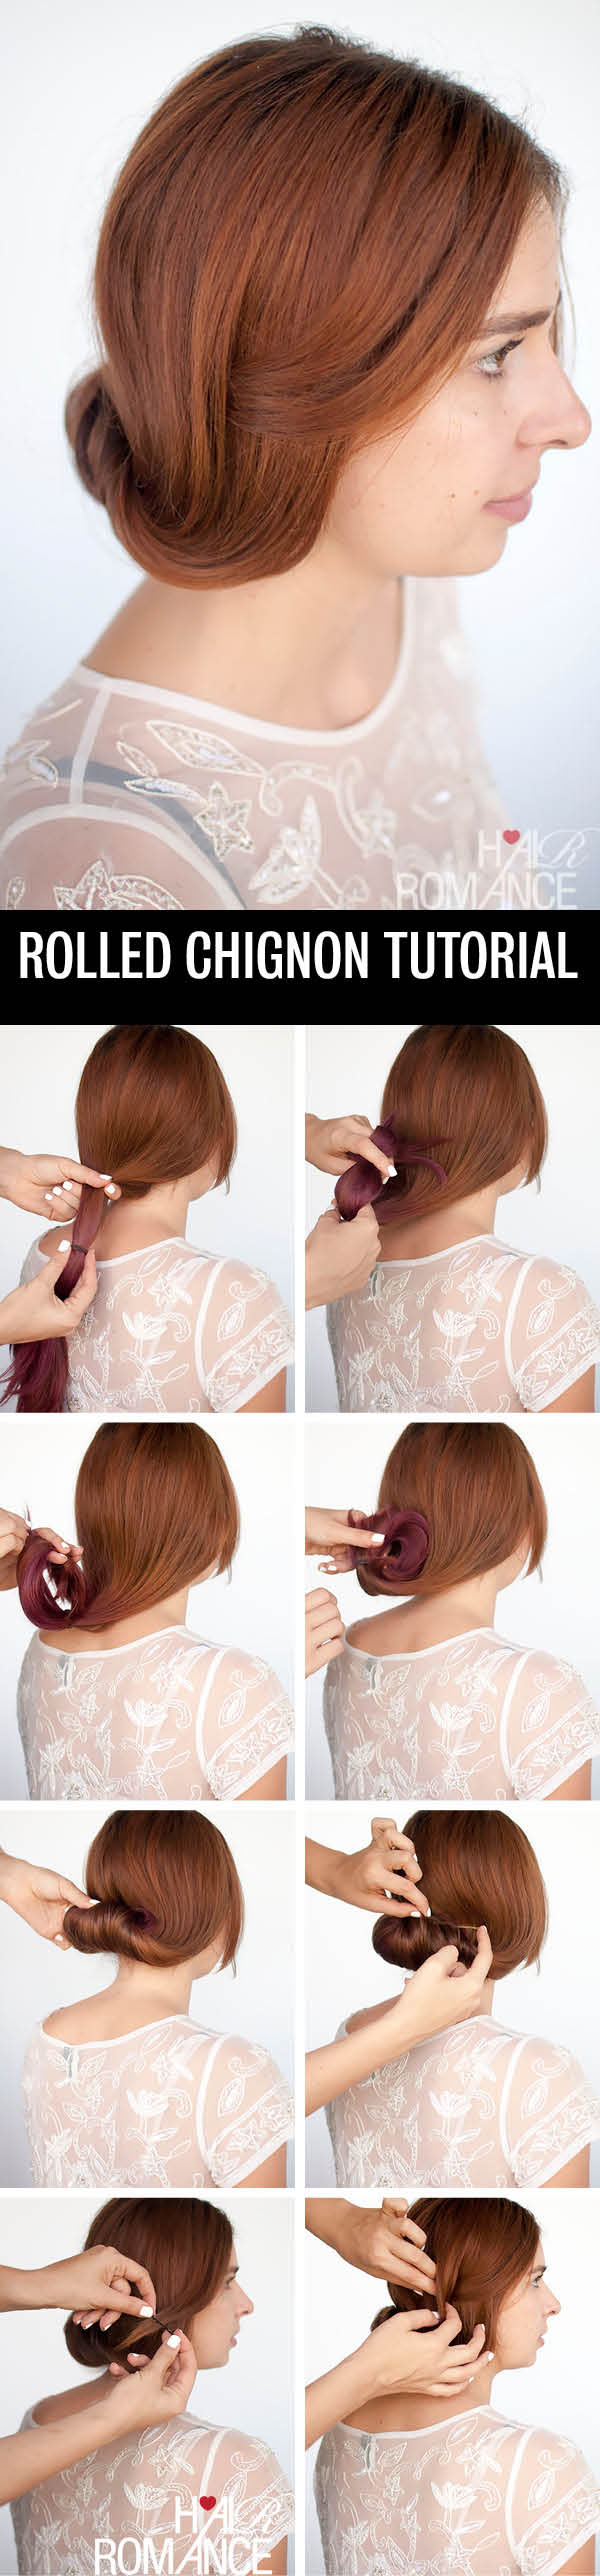 Rolled chignon hairstyle tutorial - Hair Romance